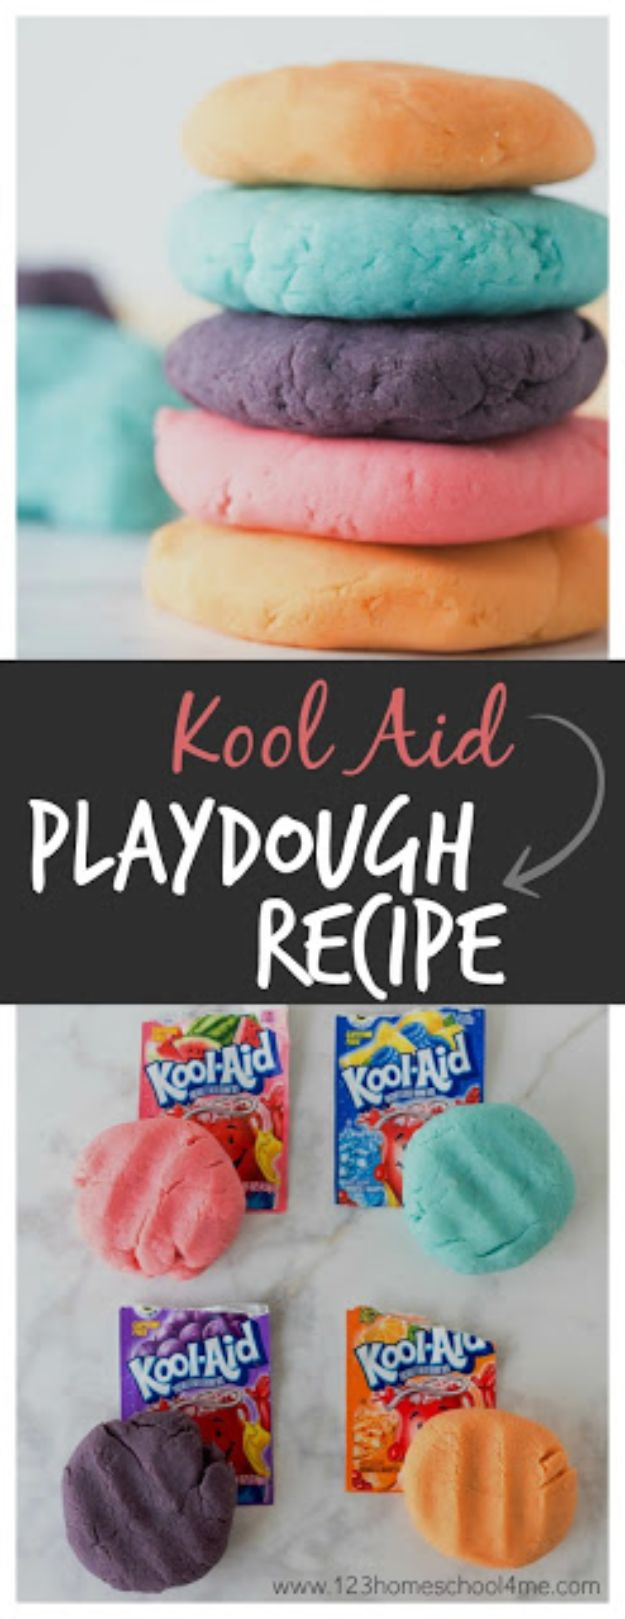 Easy Crafts for Kids - Kool Aid Playdough - Quick DIY Ideas for Children - Boys and Girls Love These Cool Craft Projects - Indoor and Outdoor Fun at Home - Cheap Playtime Activities #kidscrafts